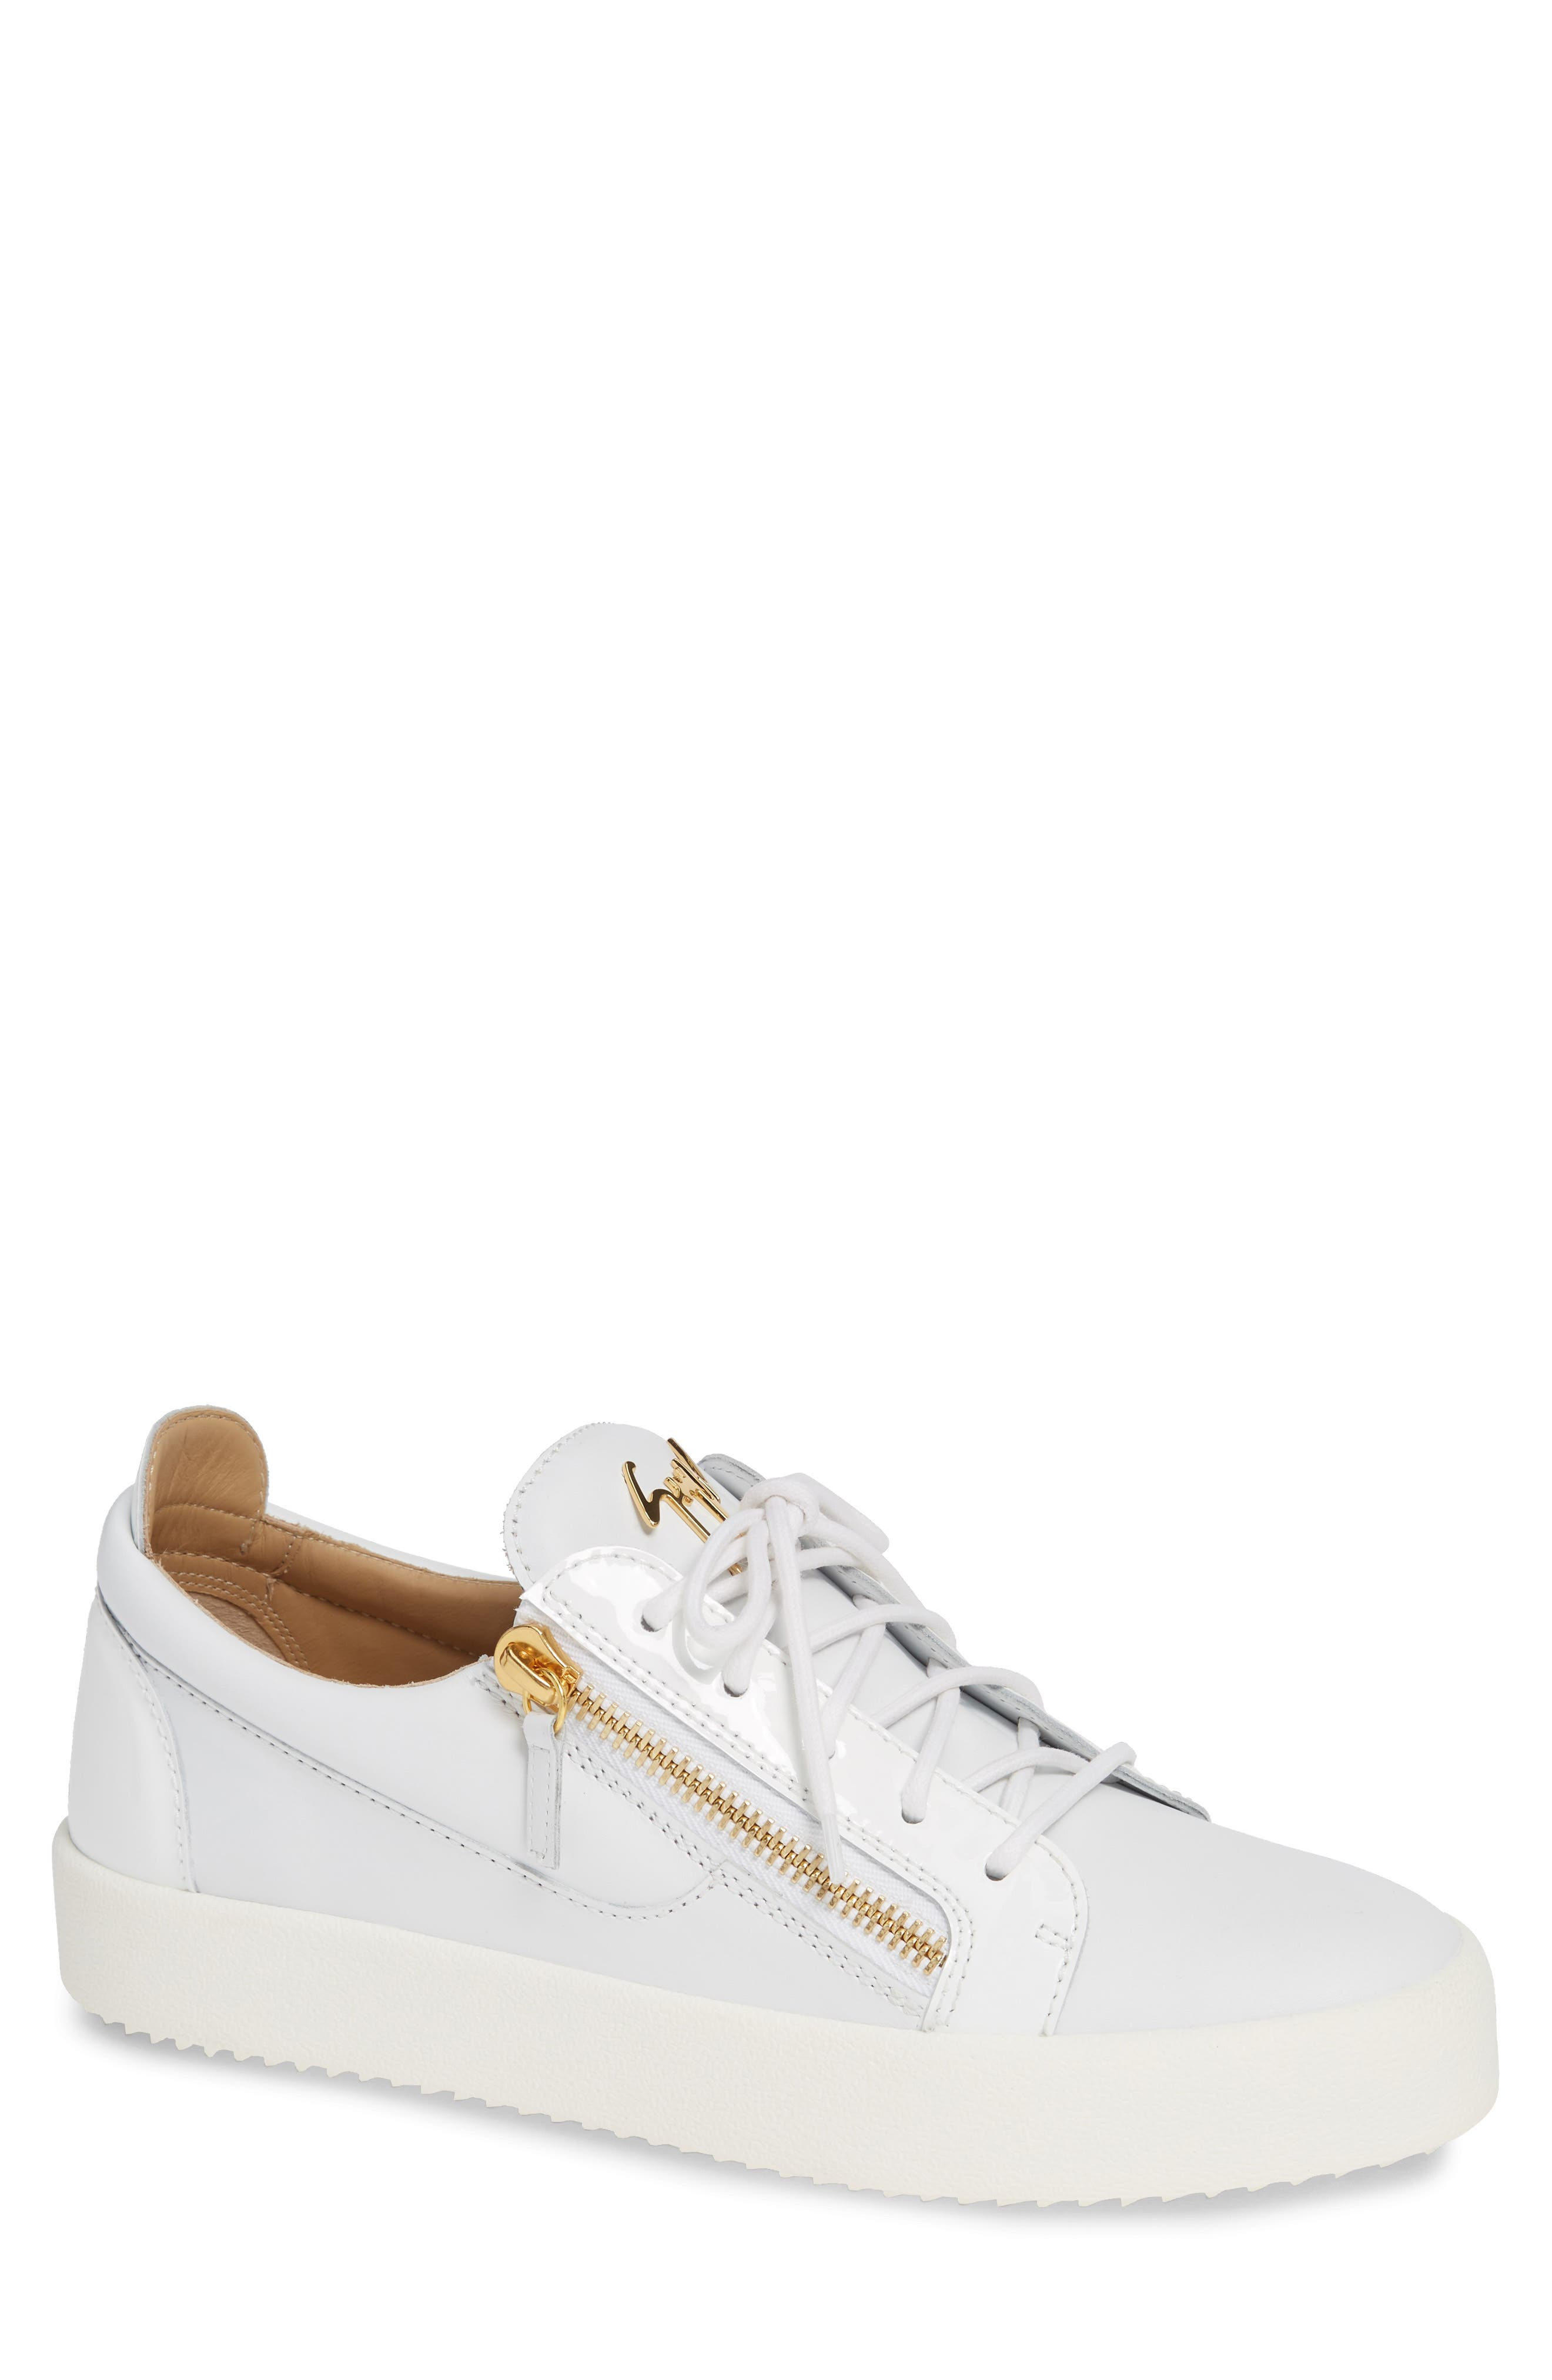 Low Top Sneaker,                             Main thumbnail 1, color,                             WHITE